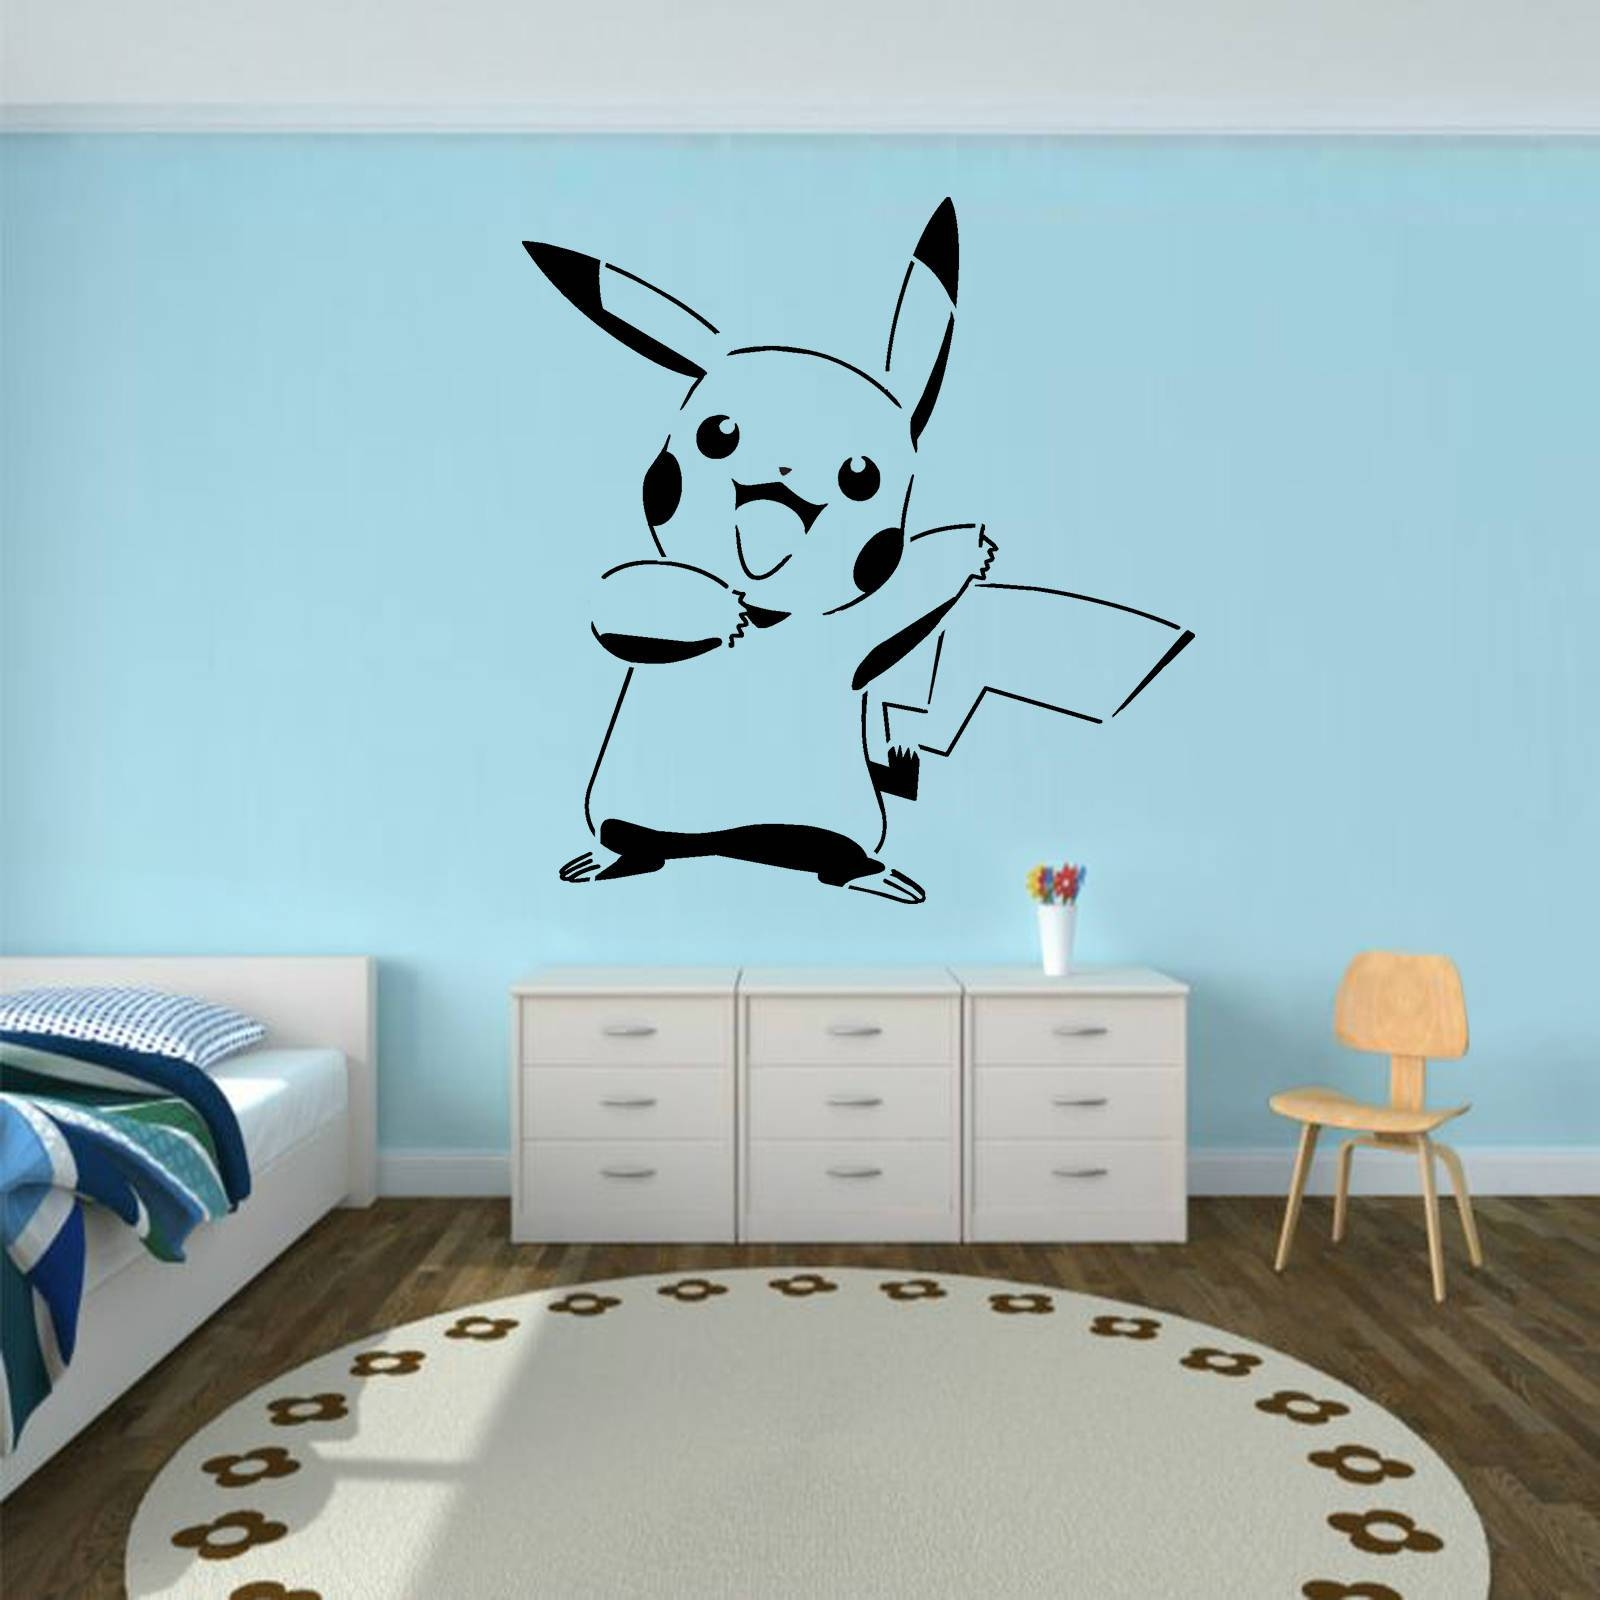 Pikachu Pokemon Mylar Airbrush Painting Wall Art Stencil From With Most Popular Airbrush Wall Art (View 15 of 20)